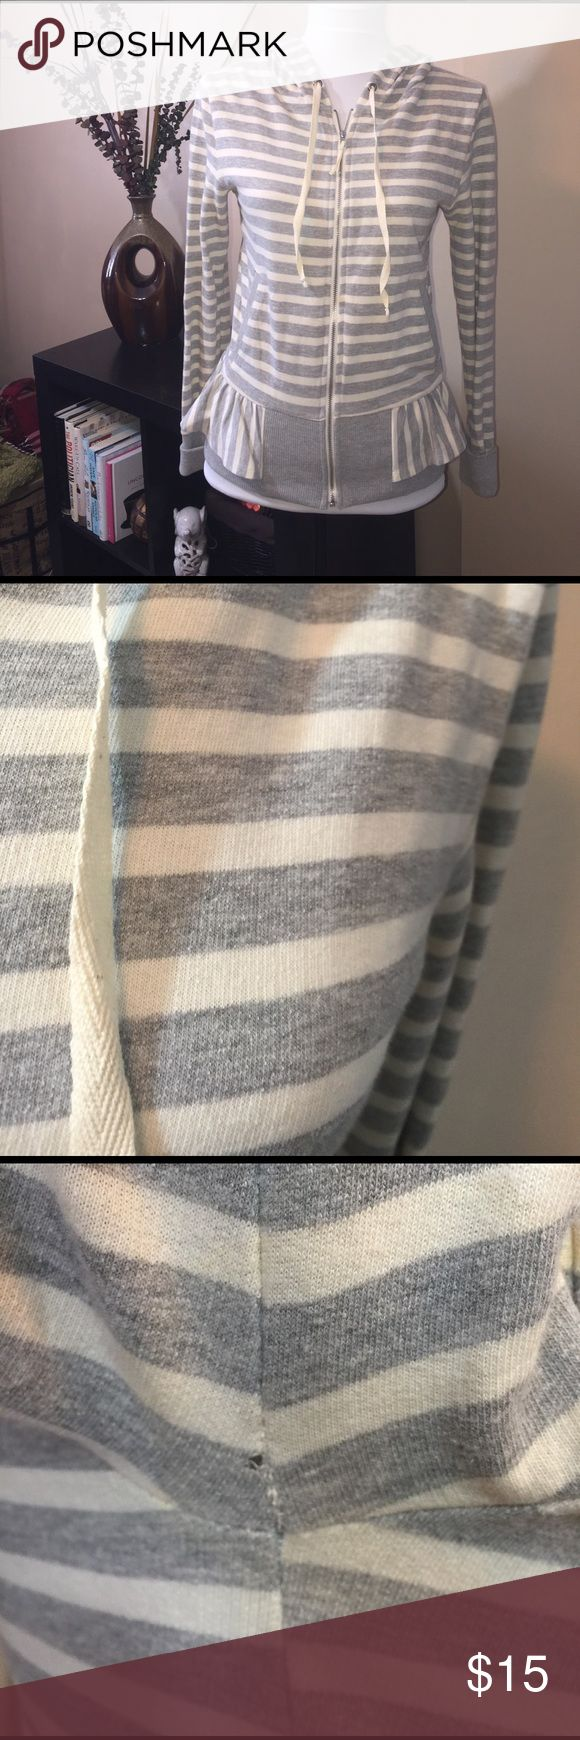 NEW Anthropologie Striped Zip-Up Ruffle Sweatshirt NEW with tags Anthropologie grey and white striped zip-up sweatshirt! The right armpit has a small pinhole which is shown in the picture! Size small! Anthropologie Tops Sweatshirts & Hoodies